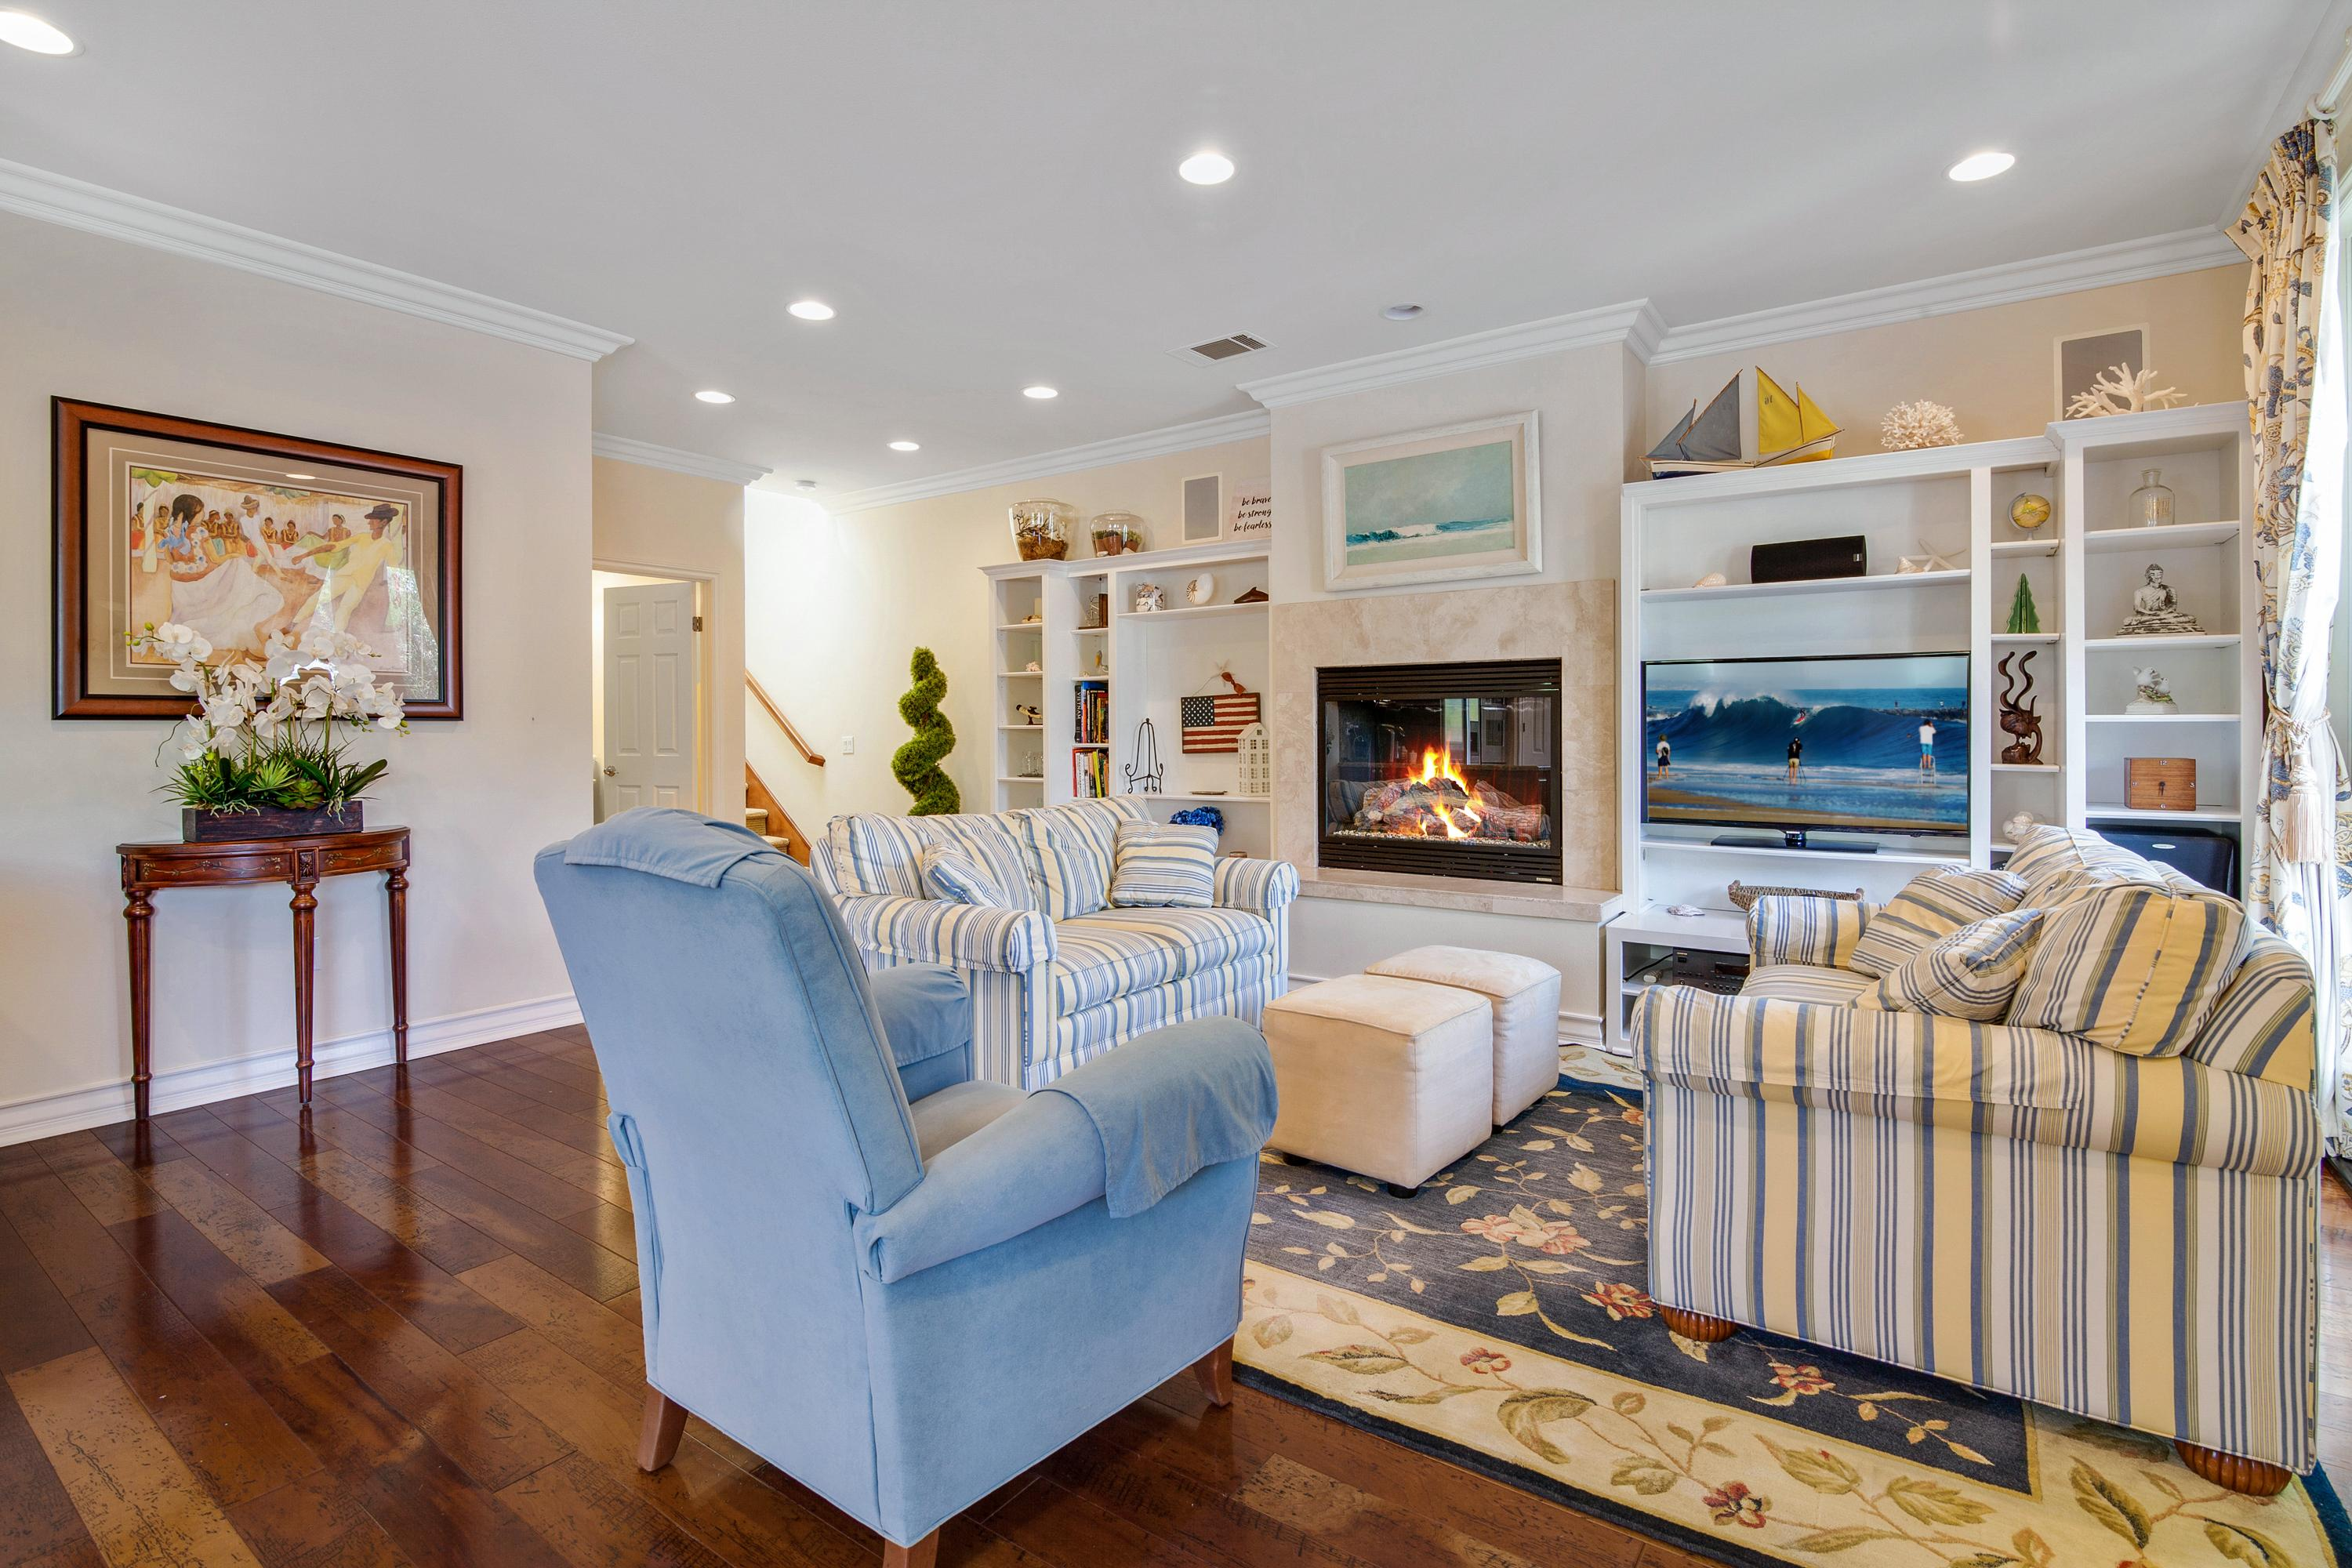 Unwind in an elegant living area with nautical-inspired decor and polished wooden floors.